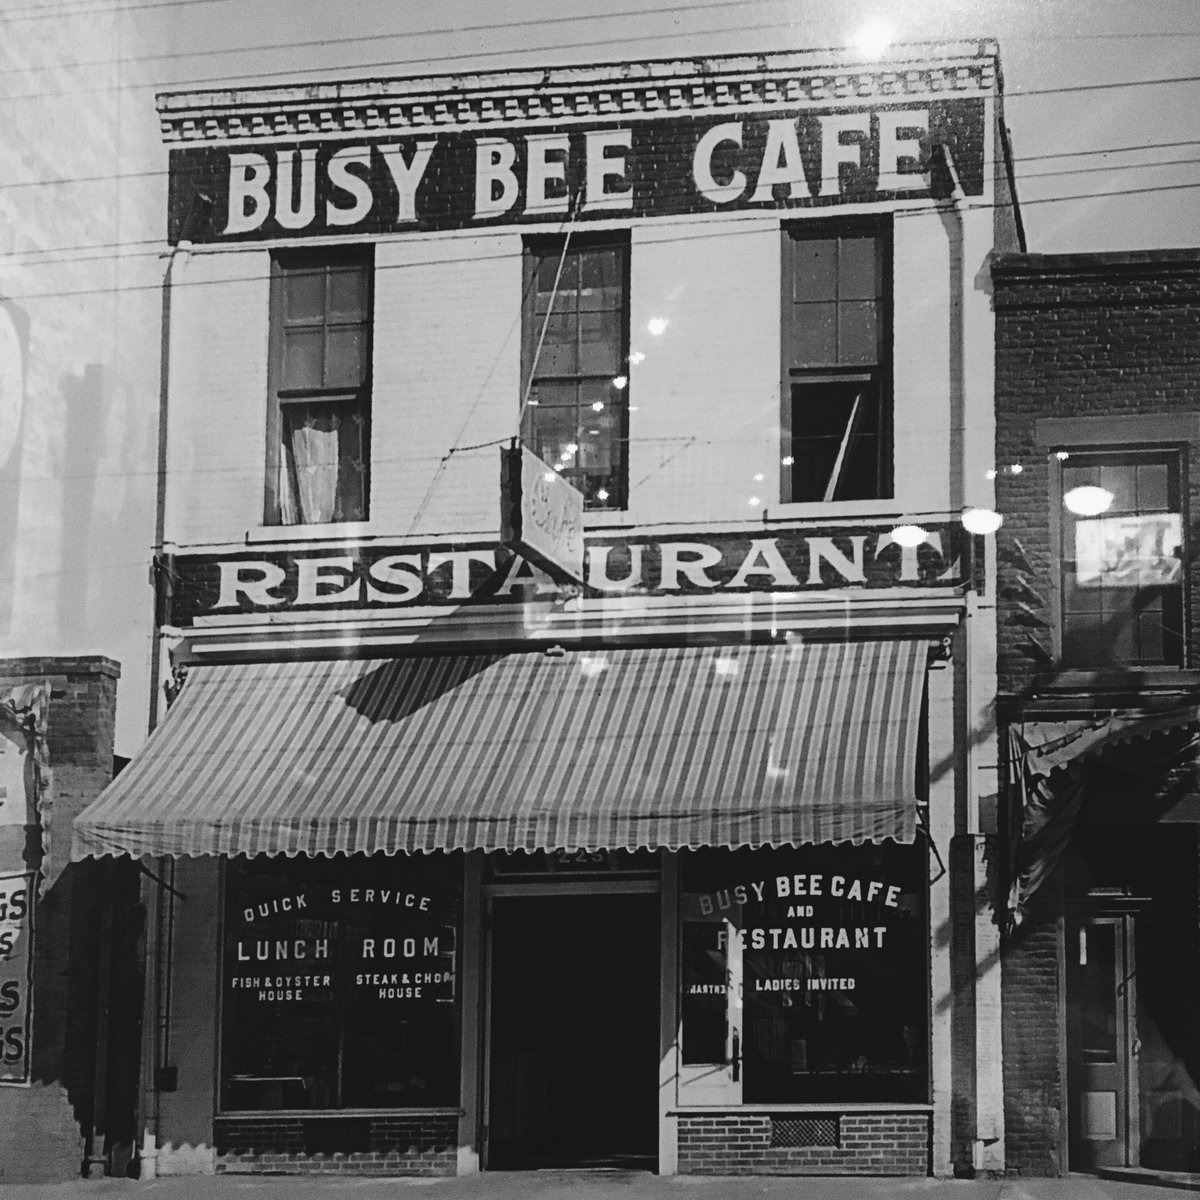 #TBT to the original Busy Bee Cafe that opened in 1913! #dtr https://t.co/5pQ964mC7n